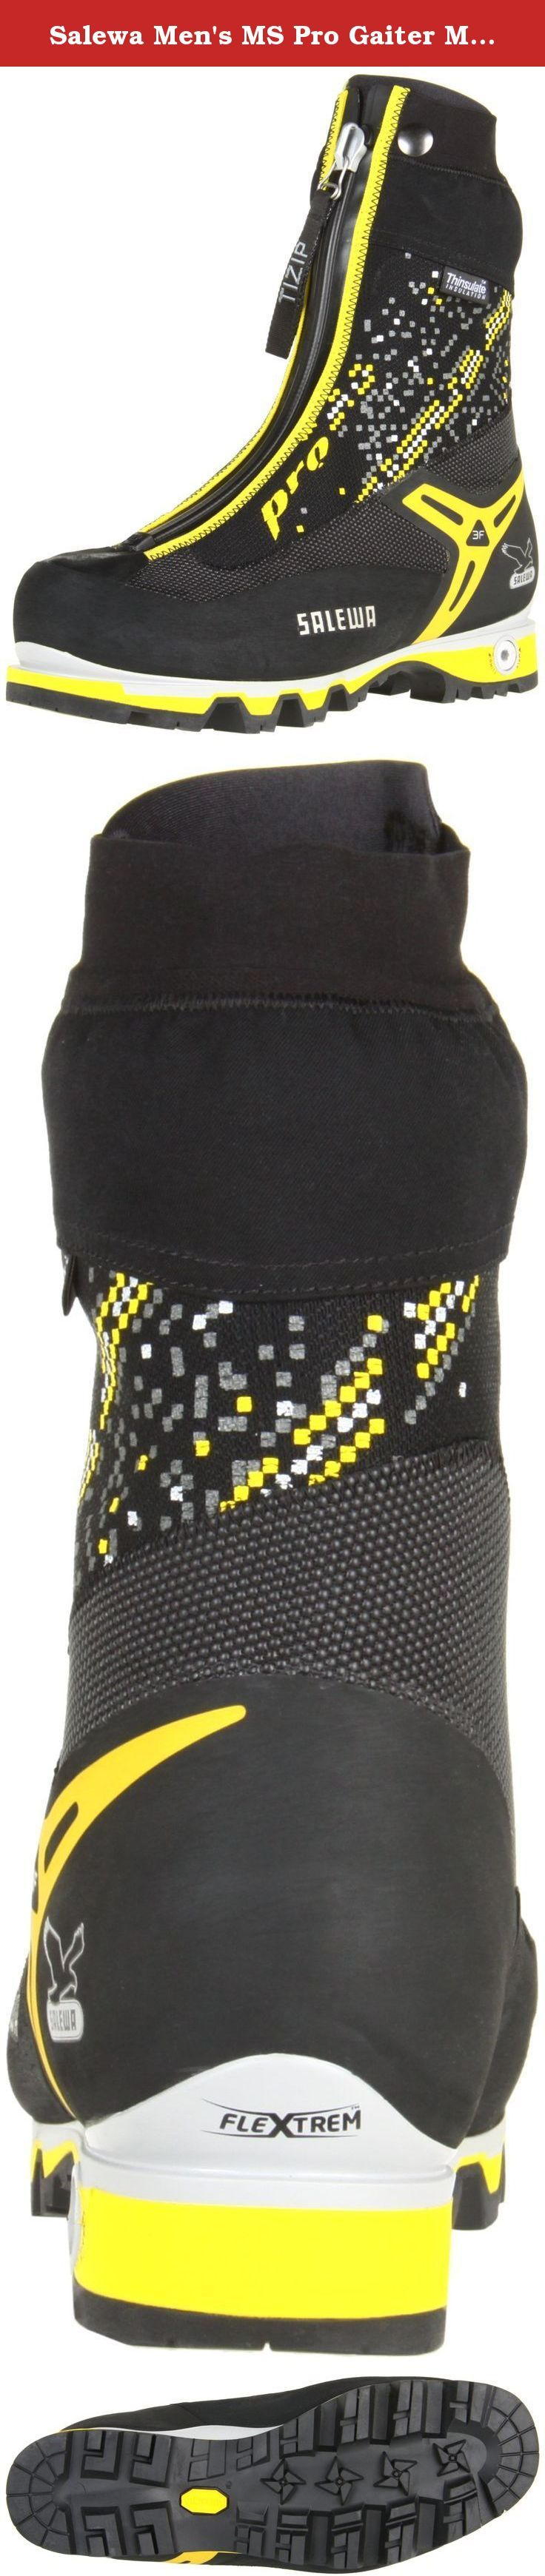 Salewa Men's MS Pro Gaiter M Mountaineering Boot, Black/Yellow, 11.5 M US. Adjustable midsole flexibility in two modes, walk or climb.